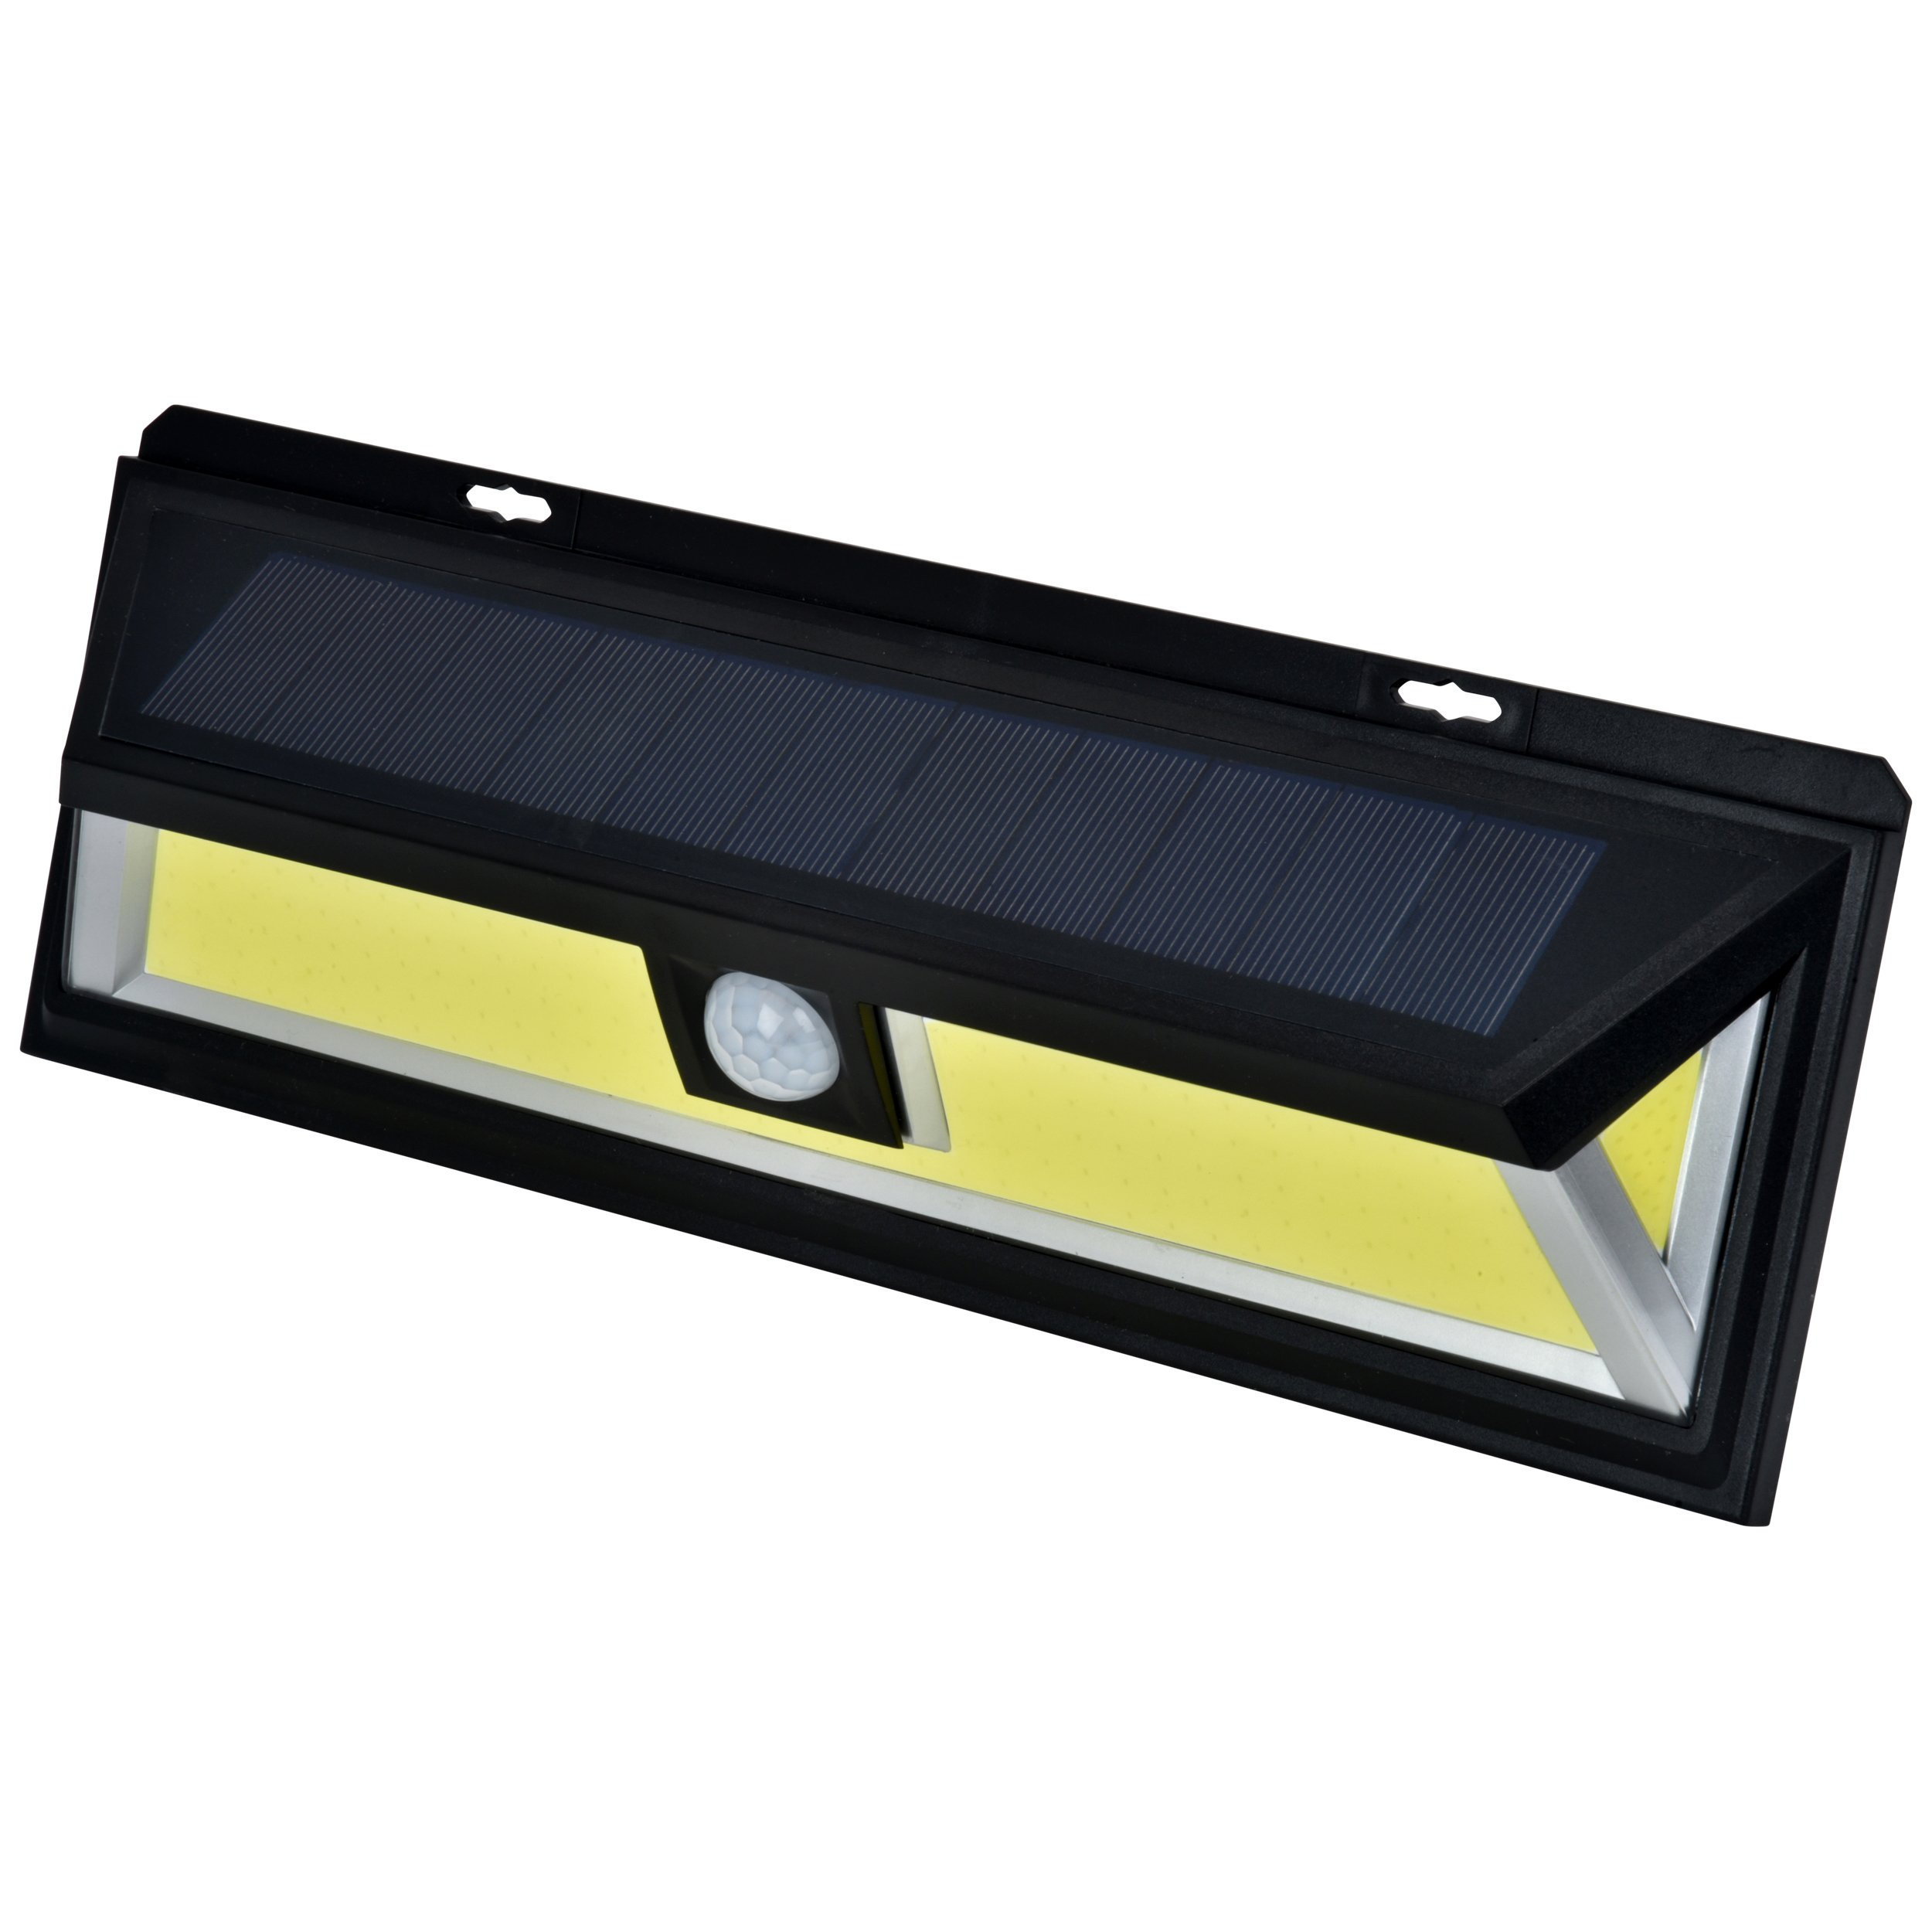 SOLAR MOTION SENSOR COB LED LIGHT By Mighty Power, Ultra Bright 700 Lumens, Perfect For Illuminating Patios, Outdoor Walkways and Pathways, Entries And Exits, Dark Alleys, RVs, Garages, Black (1 Pack)